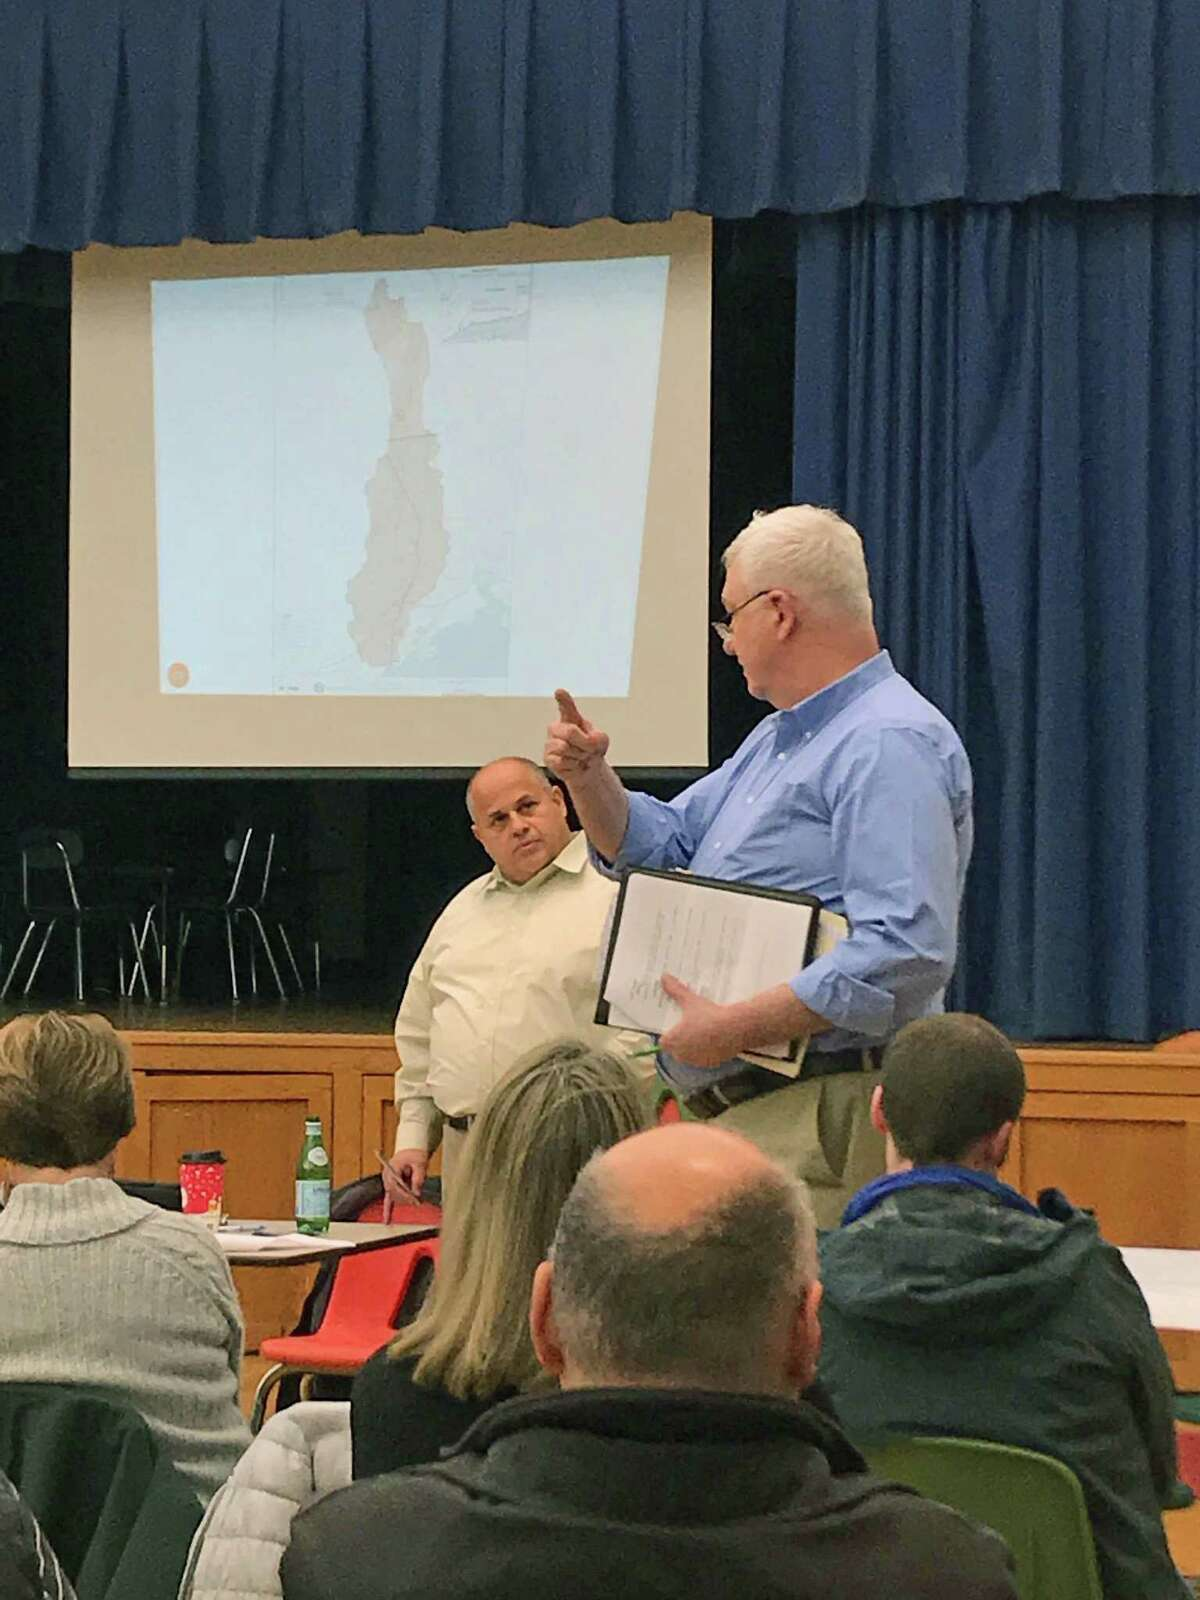 Keith Bradley, of Fairfield, explains struggles with flooding to Fairfield Director of Public Works Joseph Michelangelo at a meeting on Nov. 29, 2018, to discuss the Sept. 25, 2018, storm that flooding many Bridgeport and Fairfield, Conn., residents.